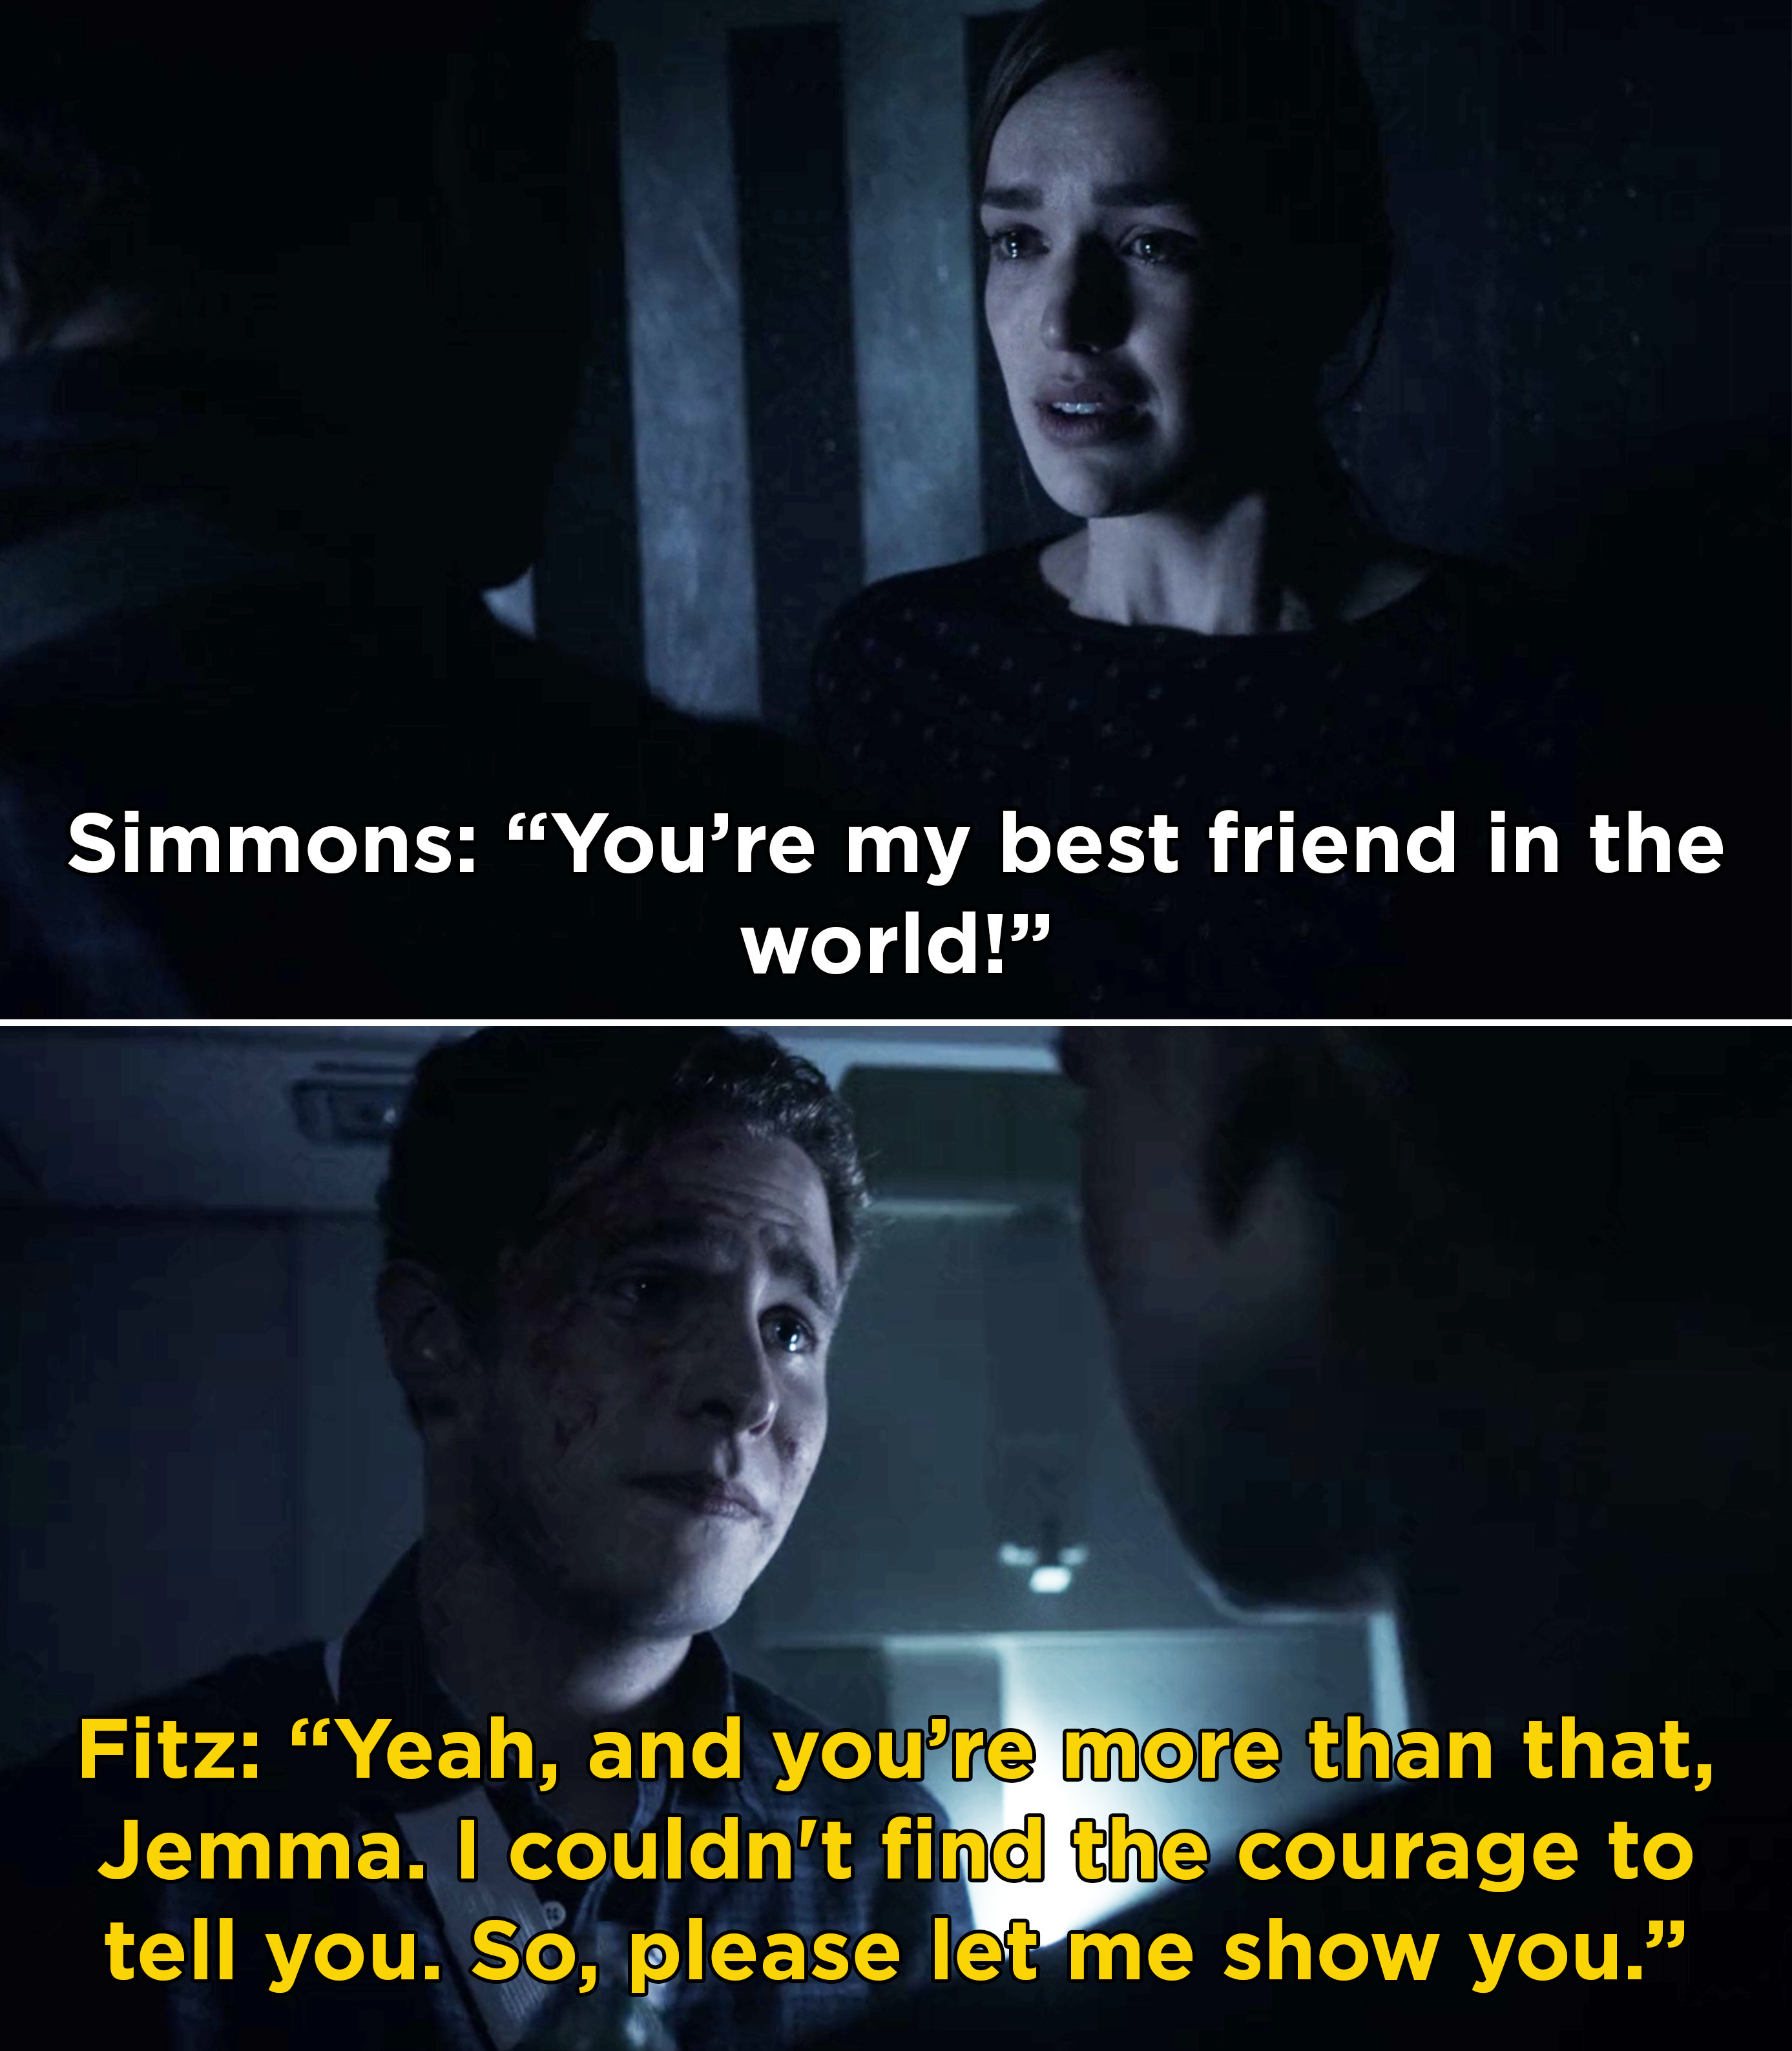 Fitz telling Jemma that she is more than just a friend, but he couldn't find the courage to tell her